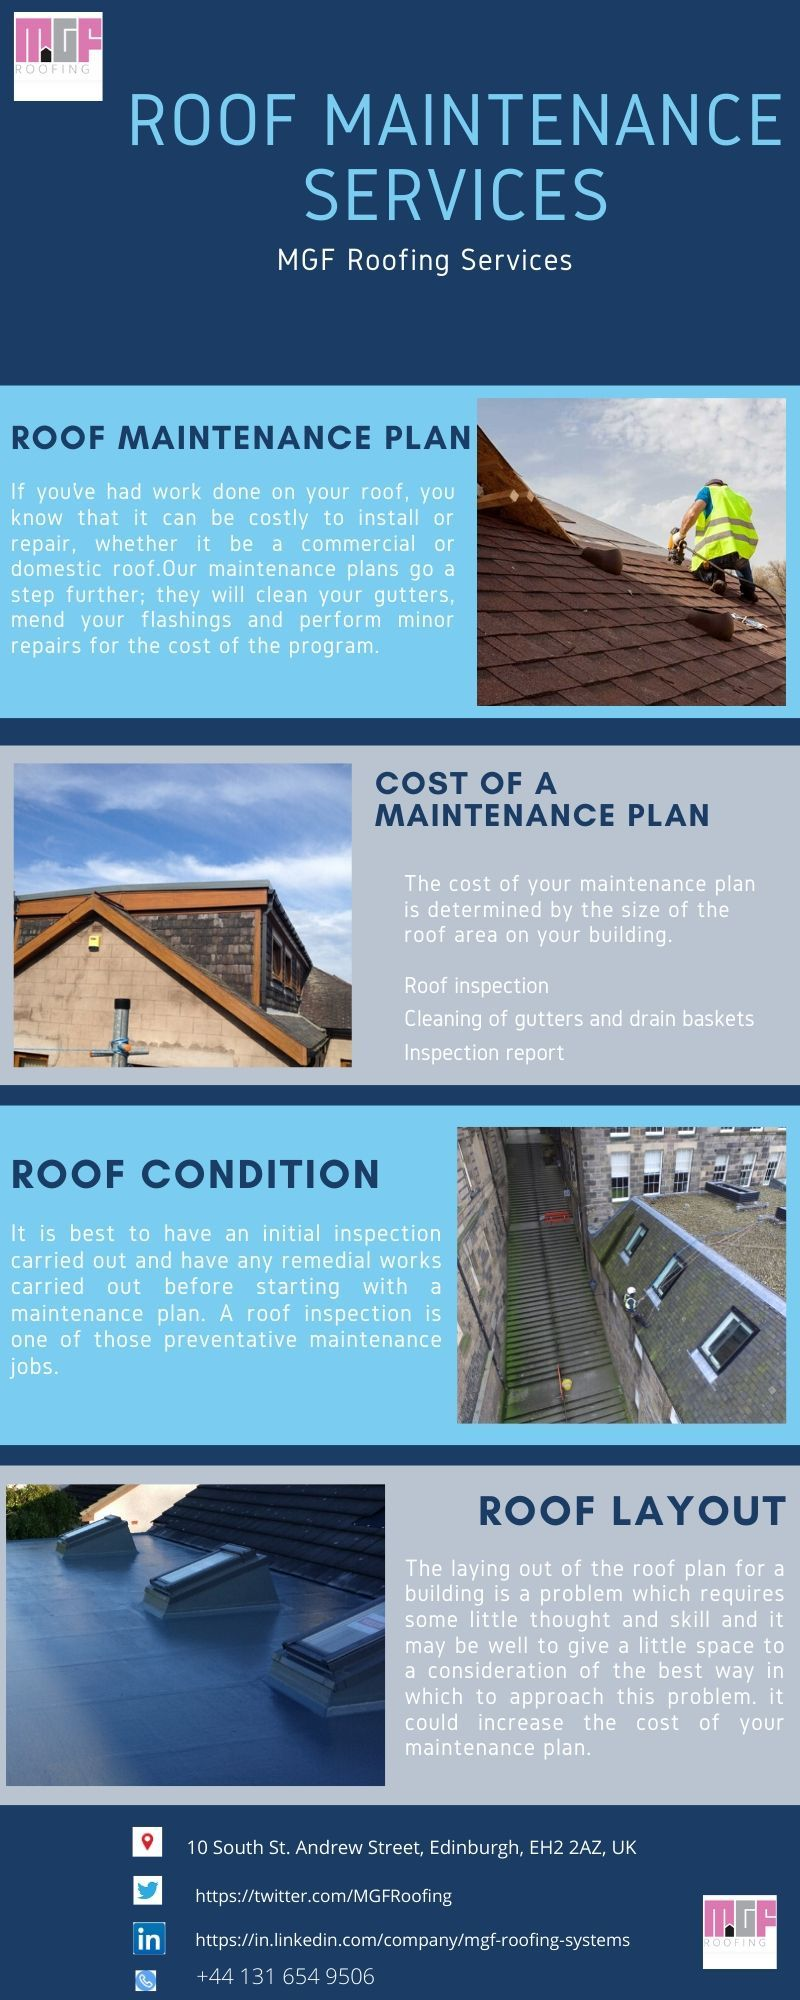 Roof Maintenance Services Roofing Contractors Roof Repair Roofing Services